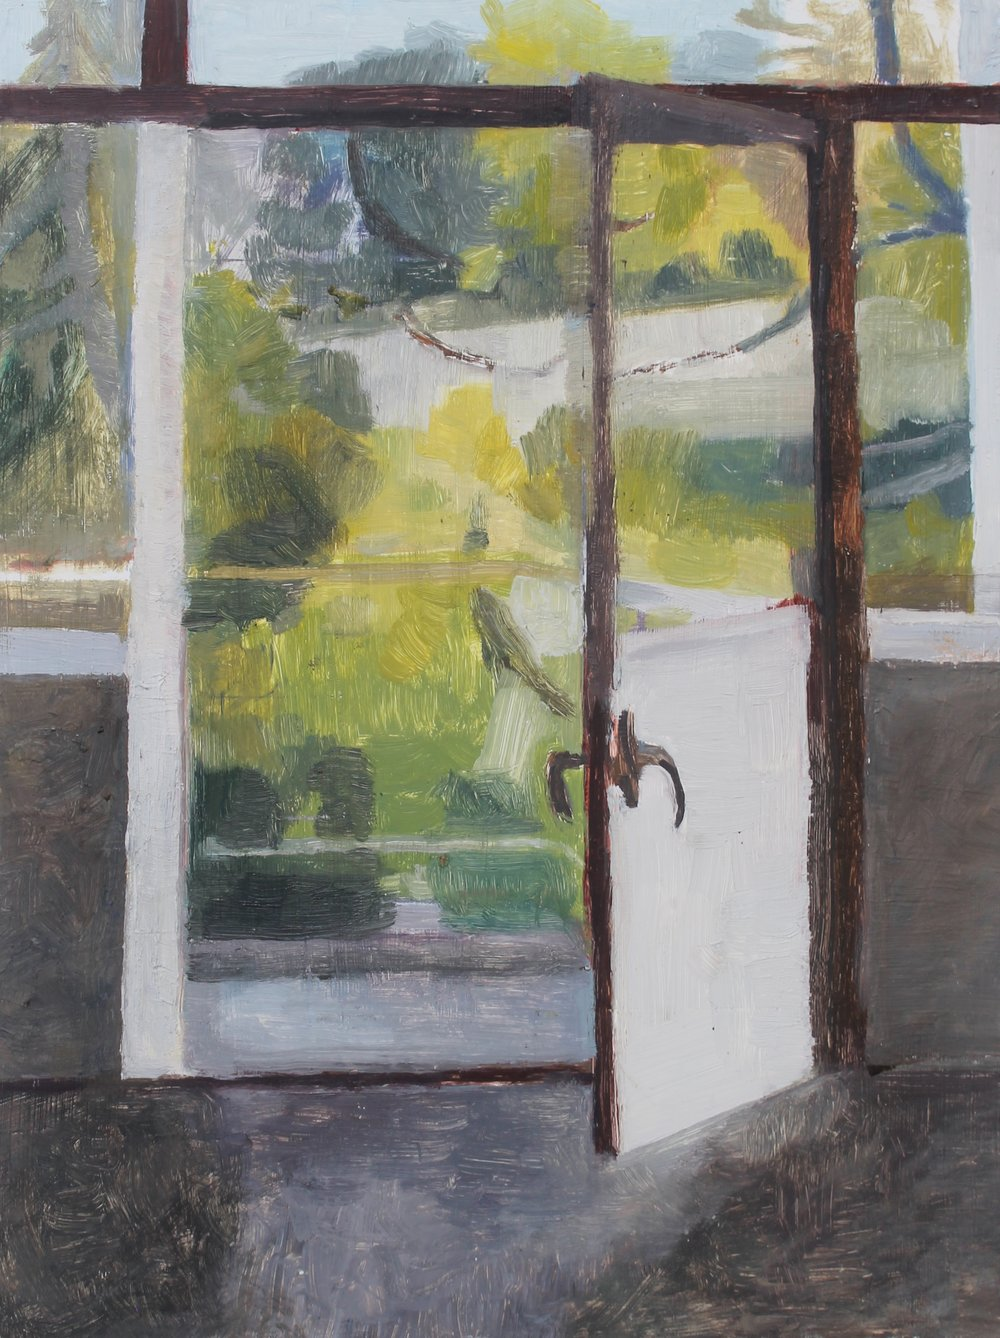 Doorway to balcony, Oil on panel, 12 x 9 in, 2013